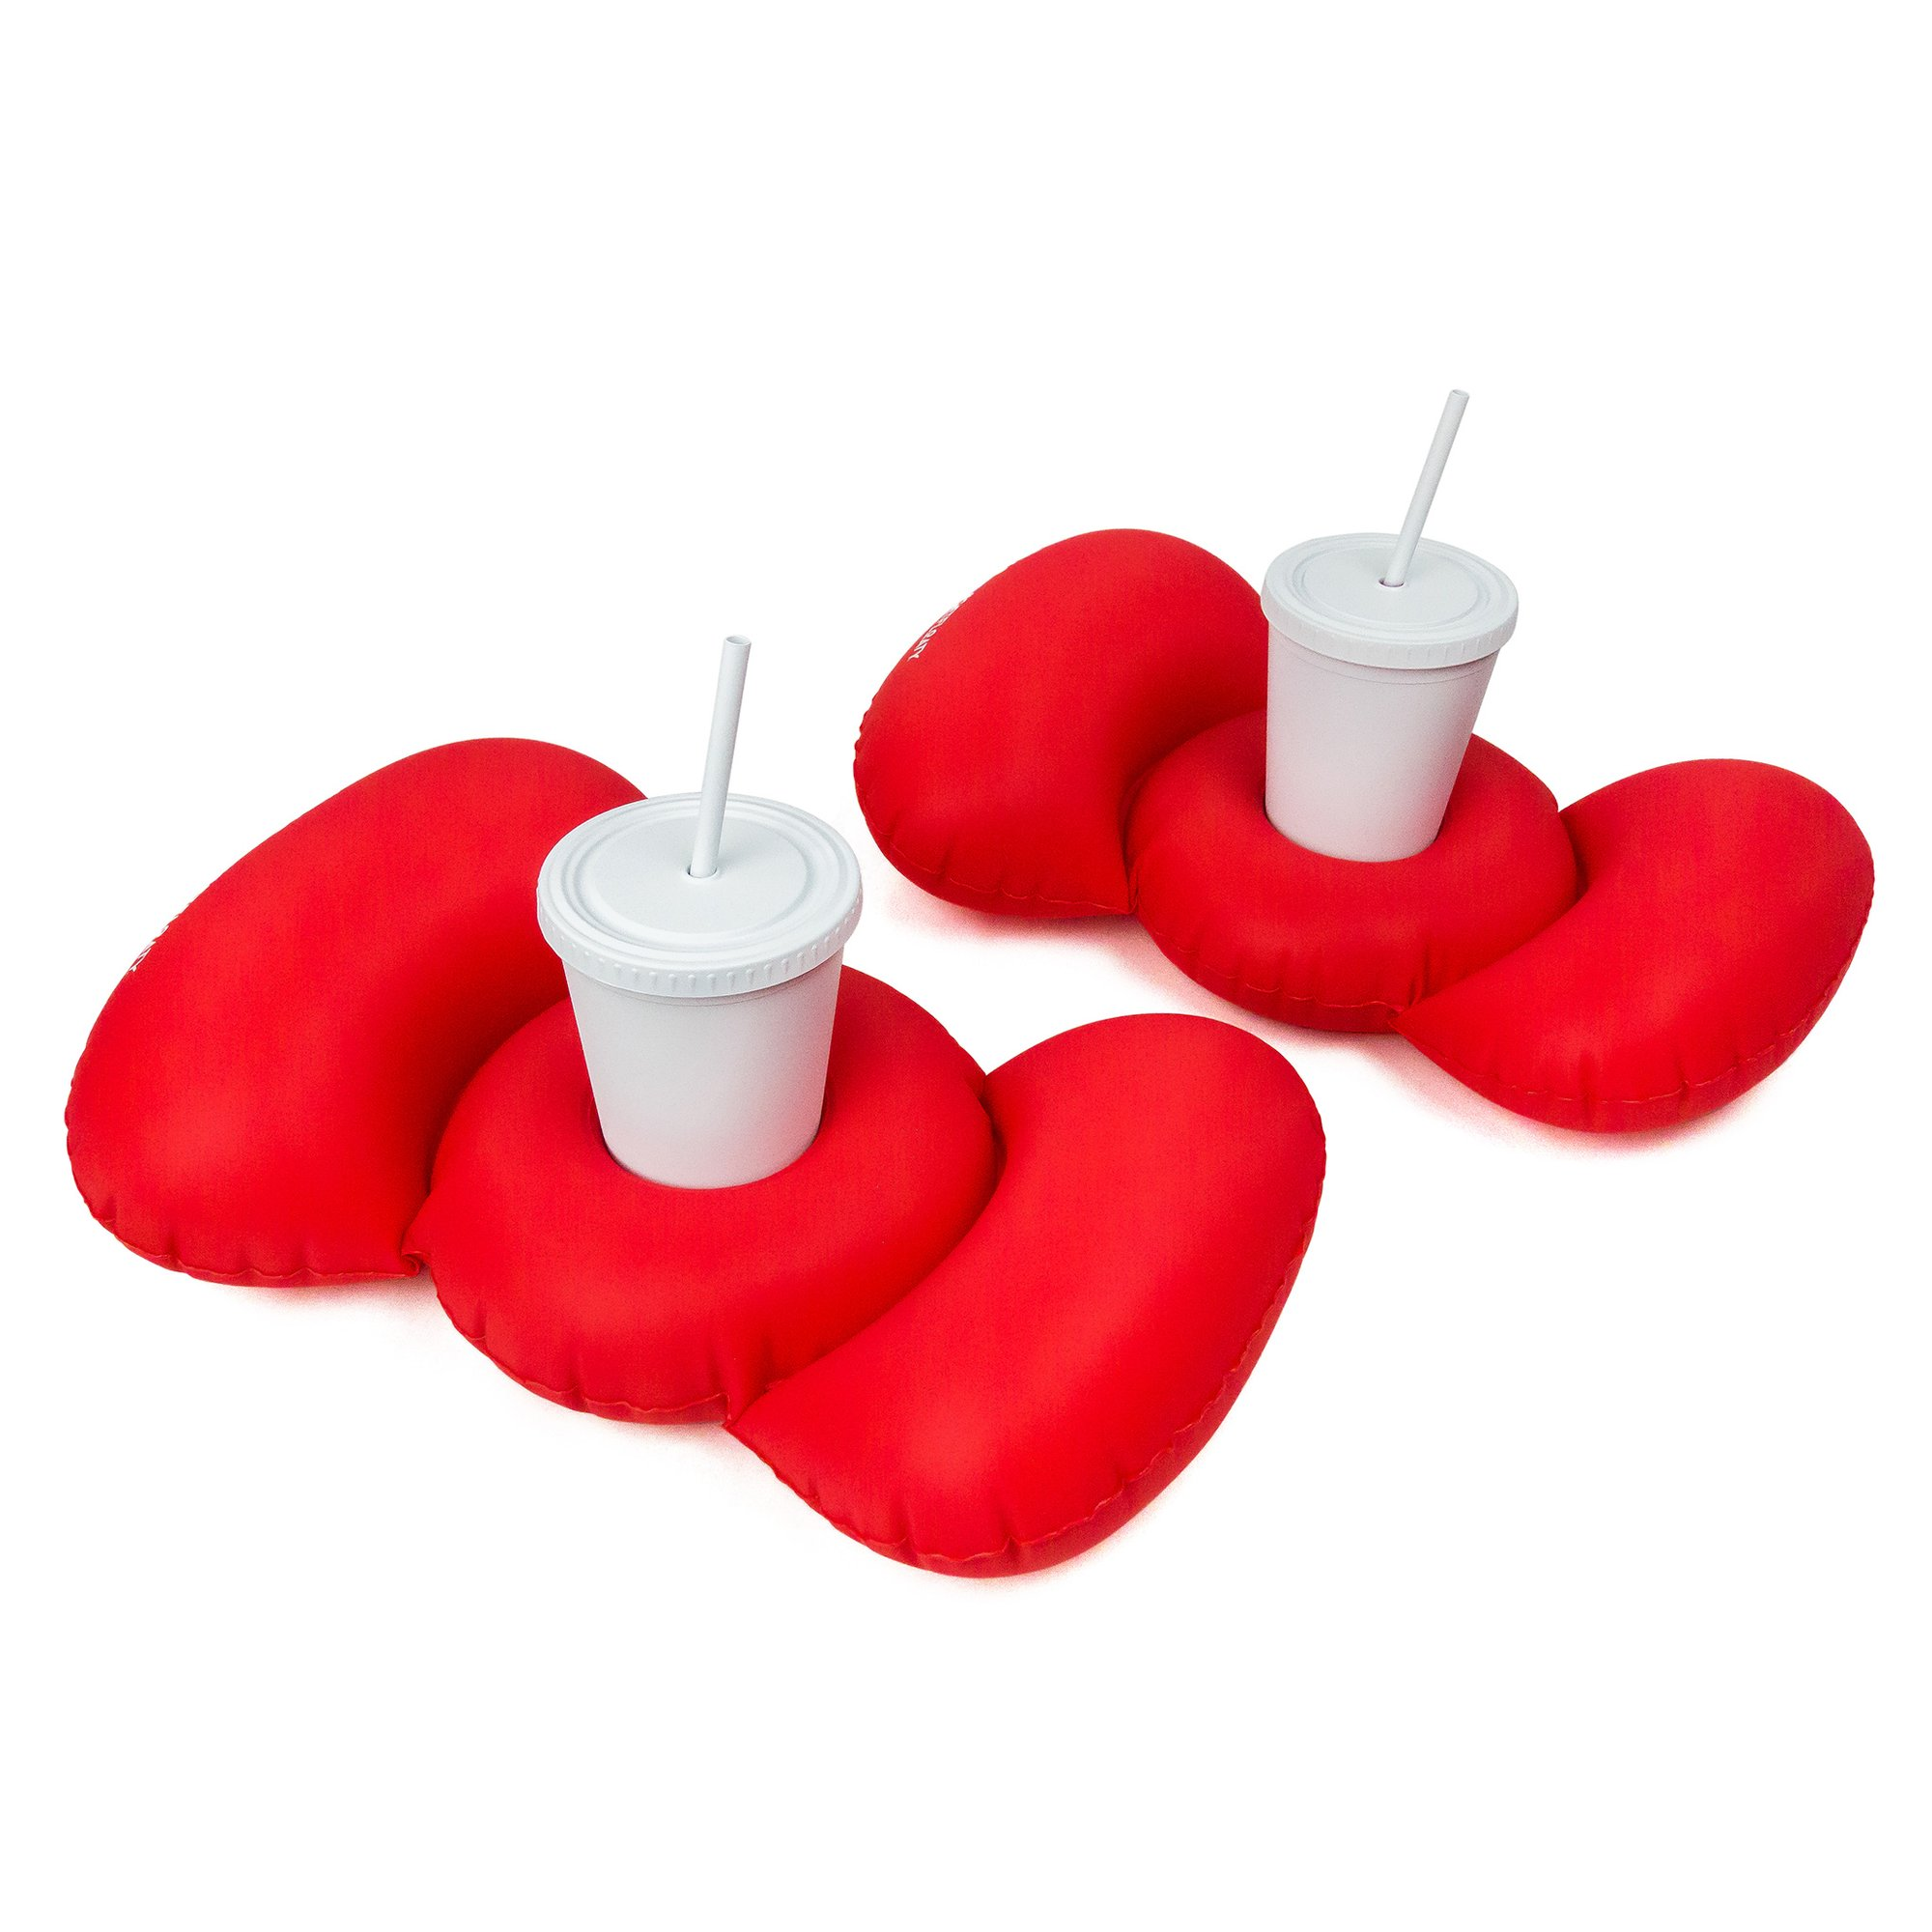 Get Floaty's Hello Kitty Bow Cupholder Set